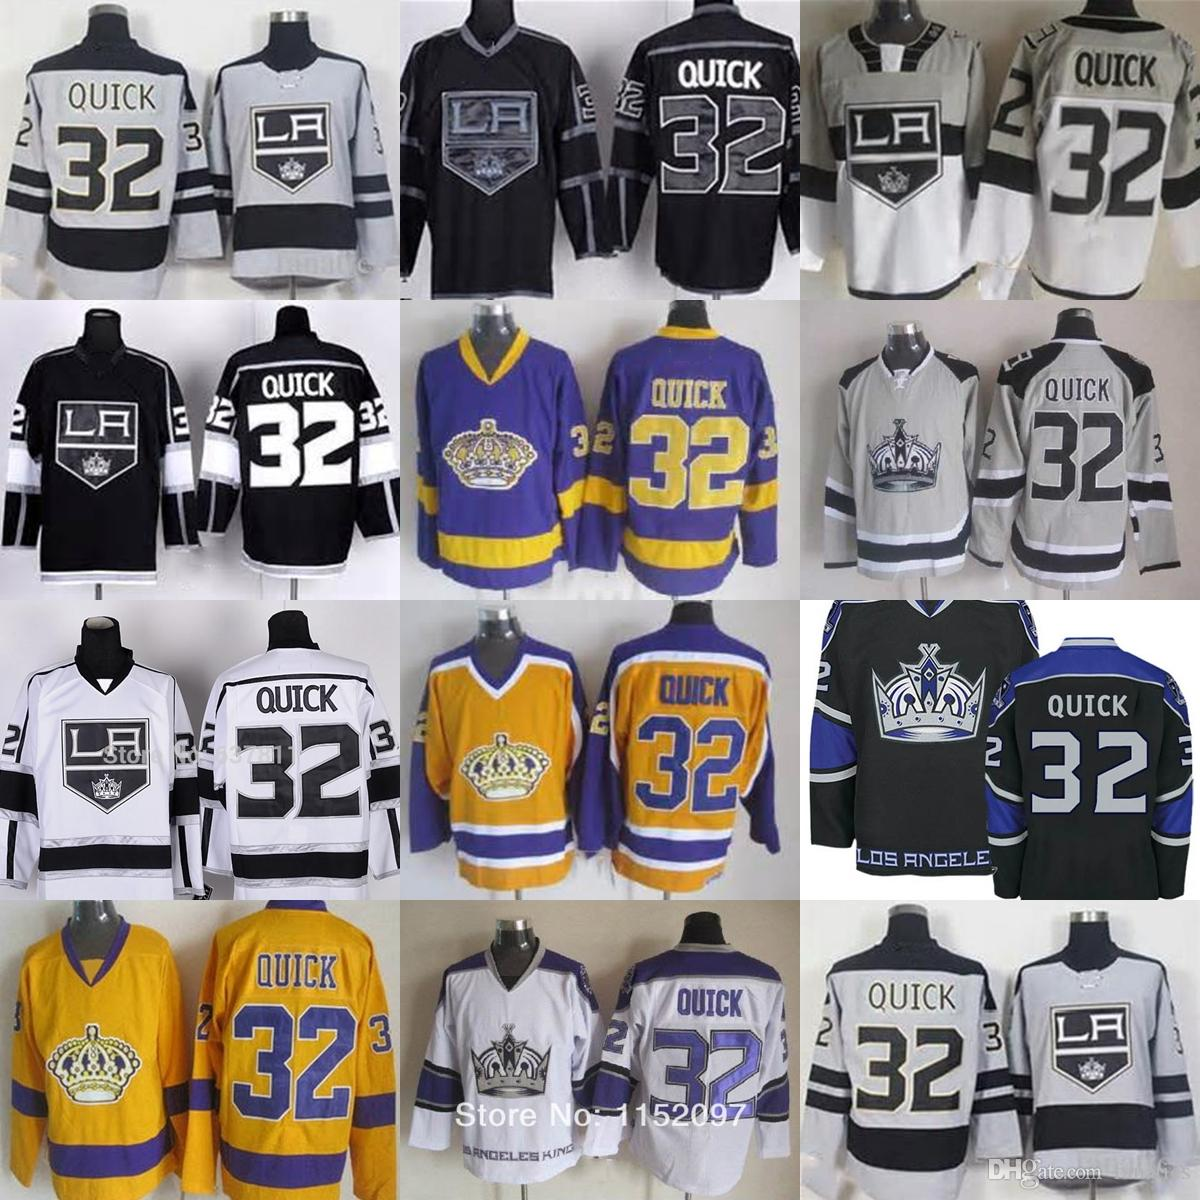 a11a52c57 2019 New Mens Los Angeles Kings  32 Jonathan Quick Black White Grey Yellow Ice  Hockey Jerseys Top Quality Drop Shipping Accept From Fanatics